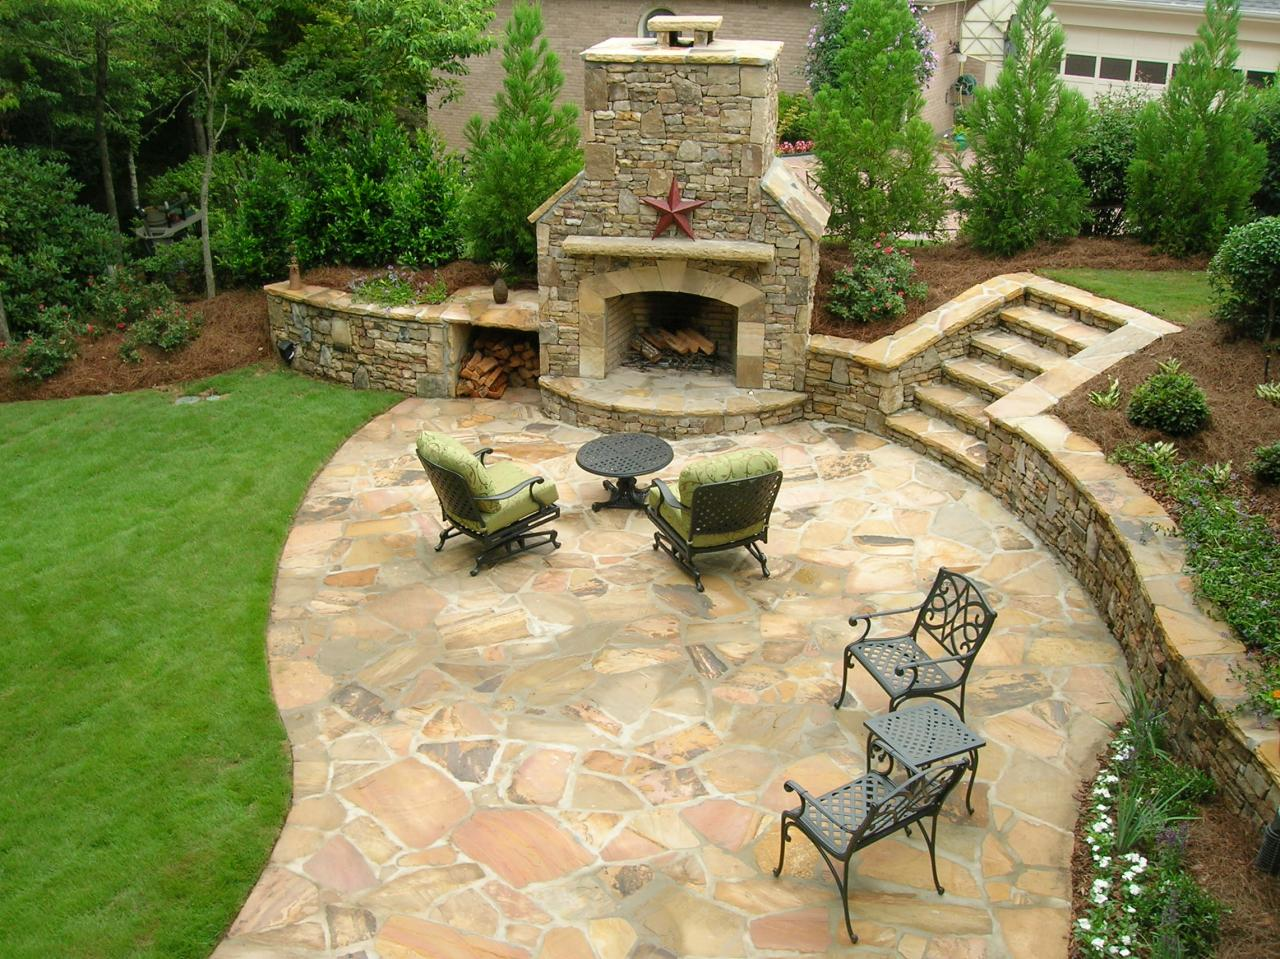 Outdoor Landscape Design Of After A Beautiful Stone Patio And Fireplace Backed By